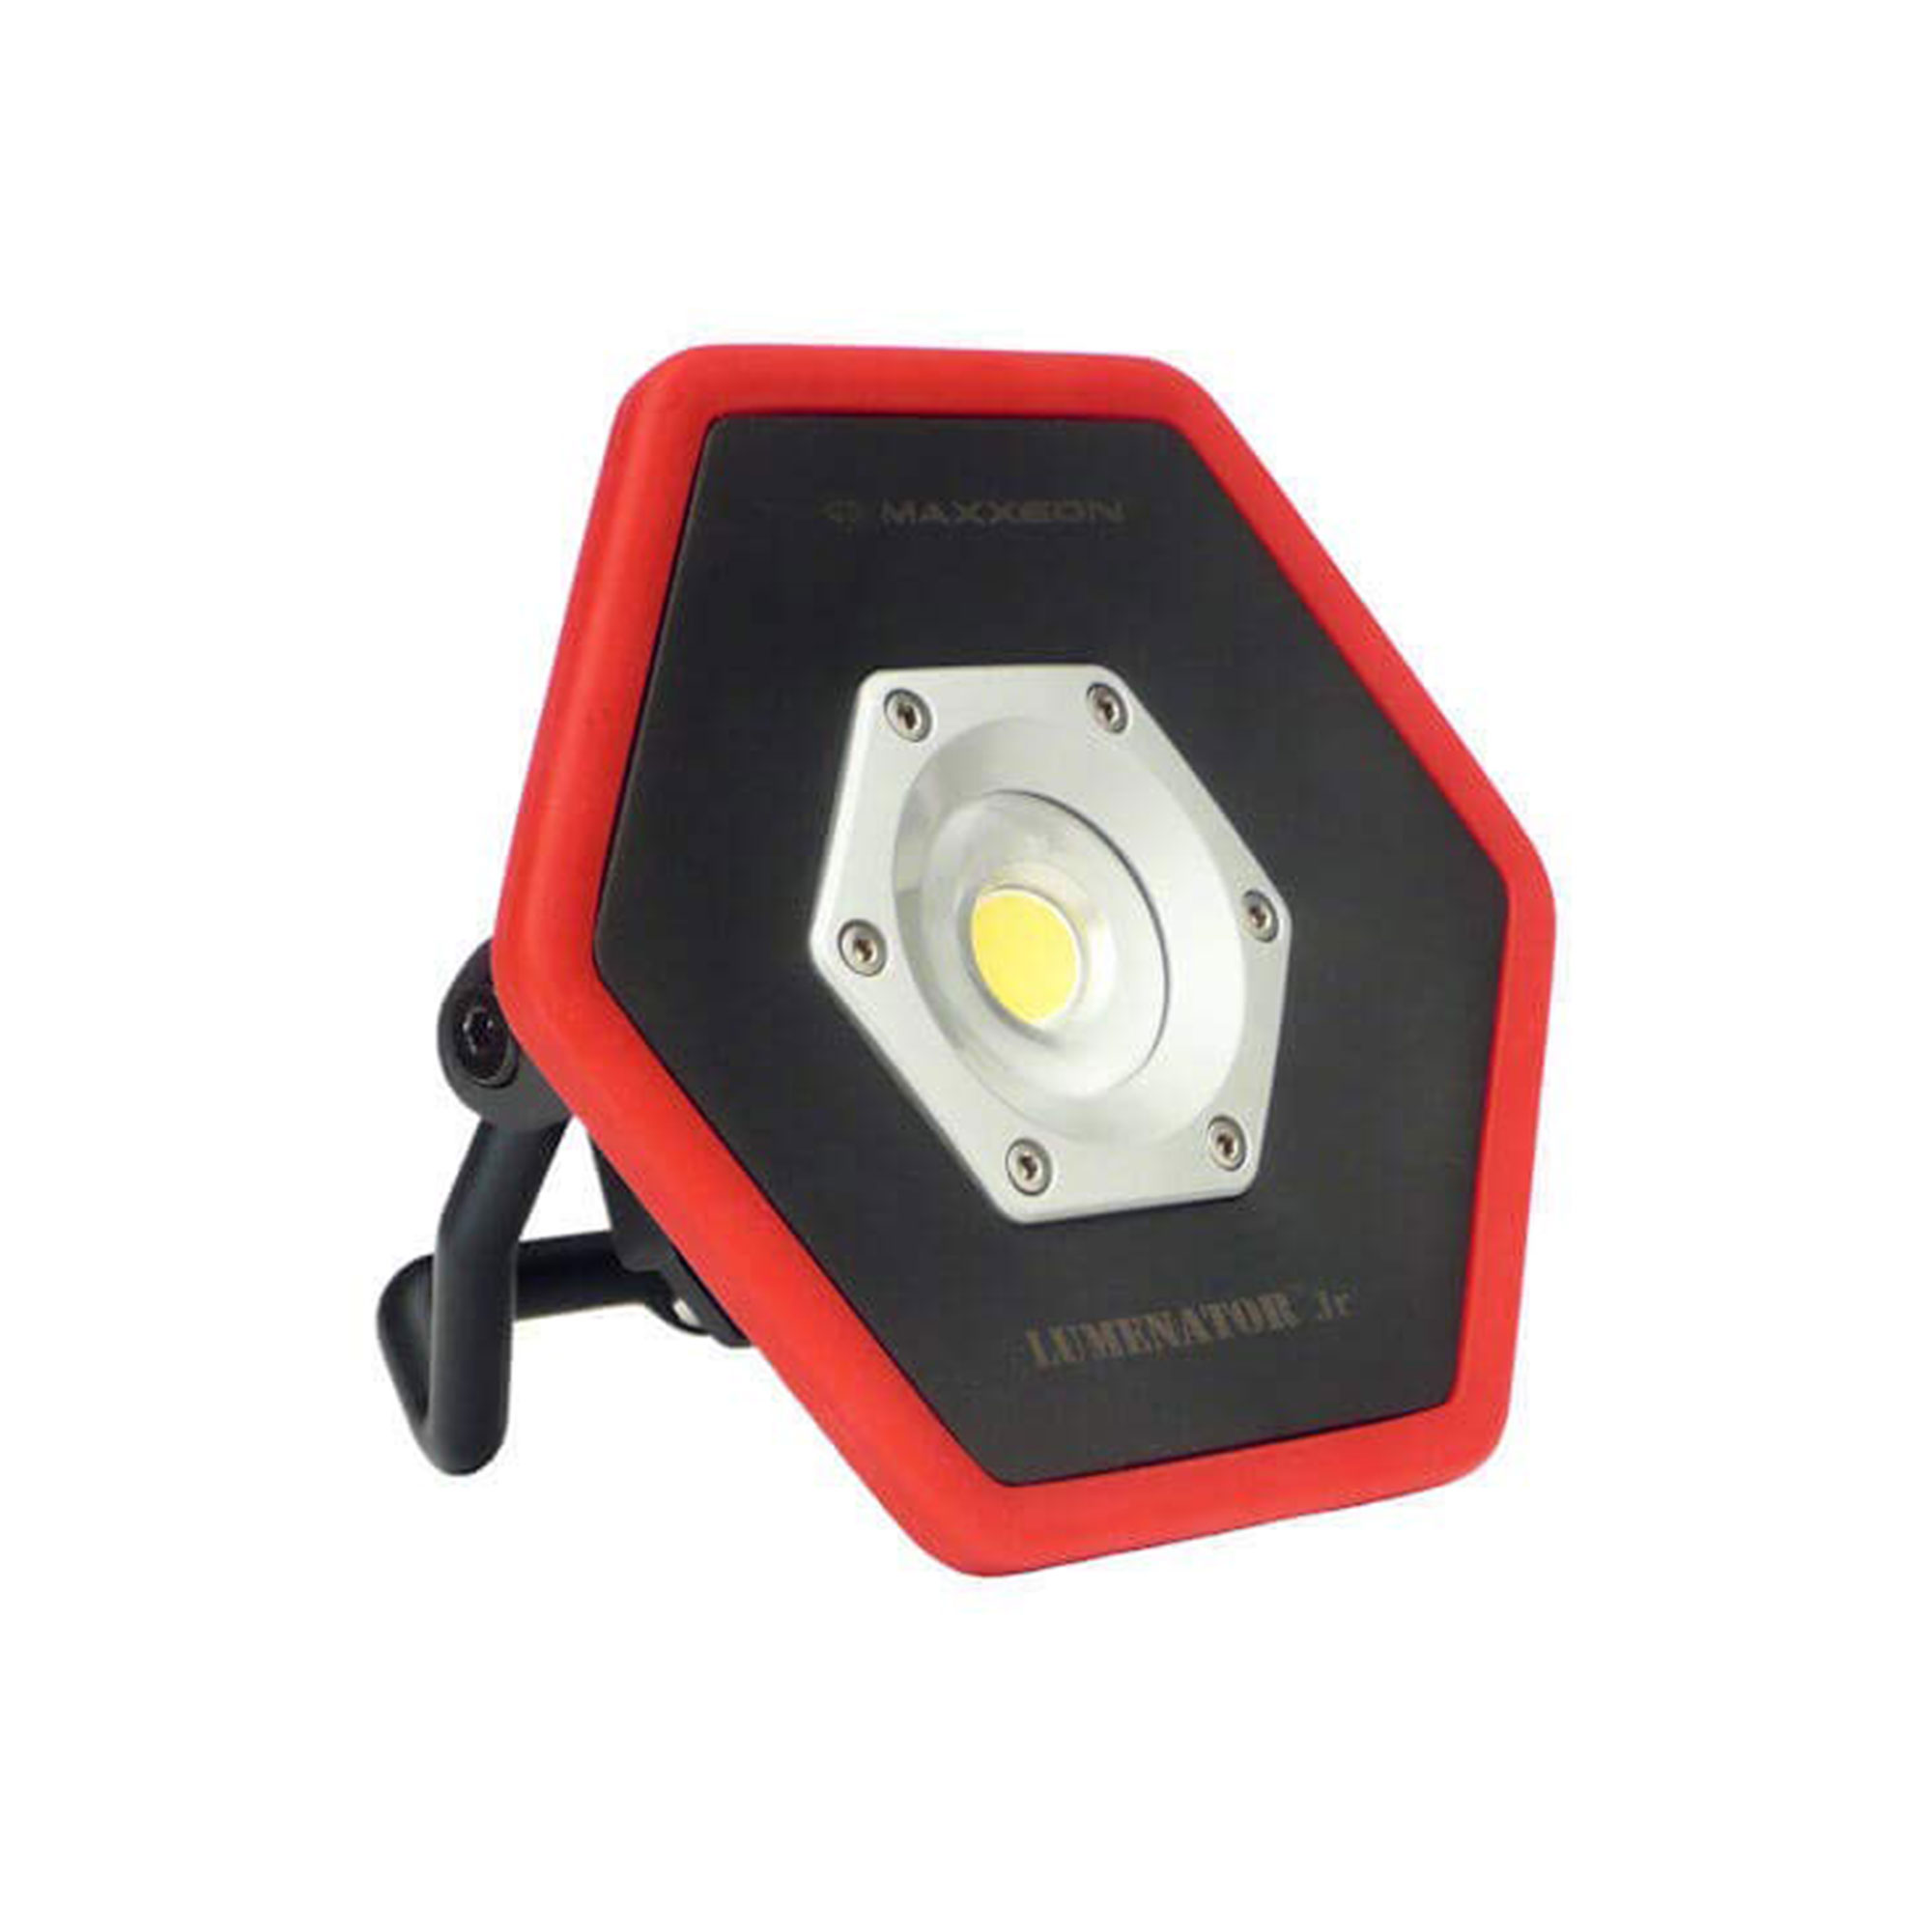 AMSUER 1200LM Bicycle Head Light LED Headlamp Torch Recharging 5200mMa Battery